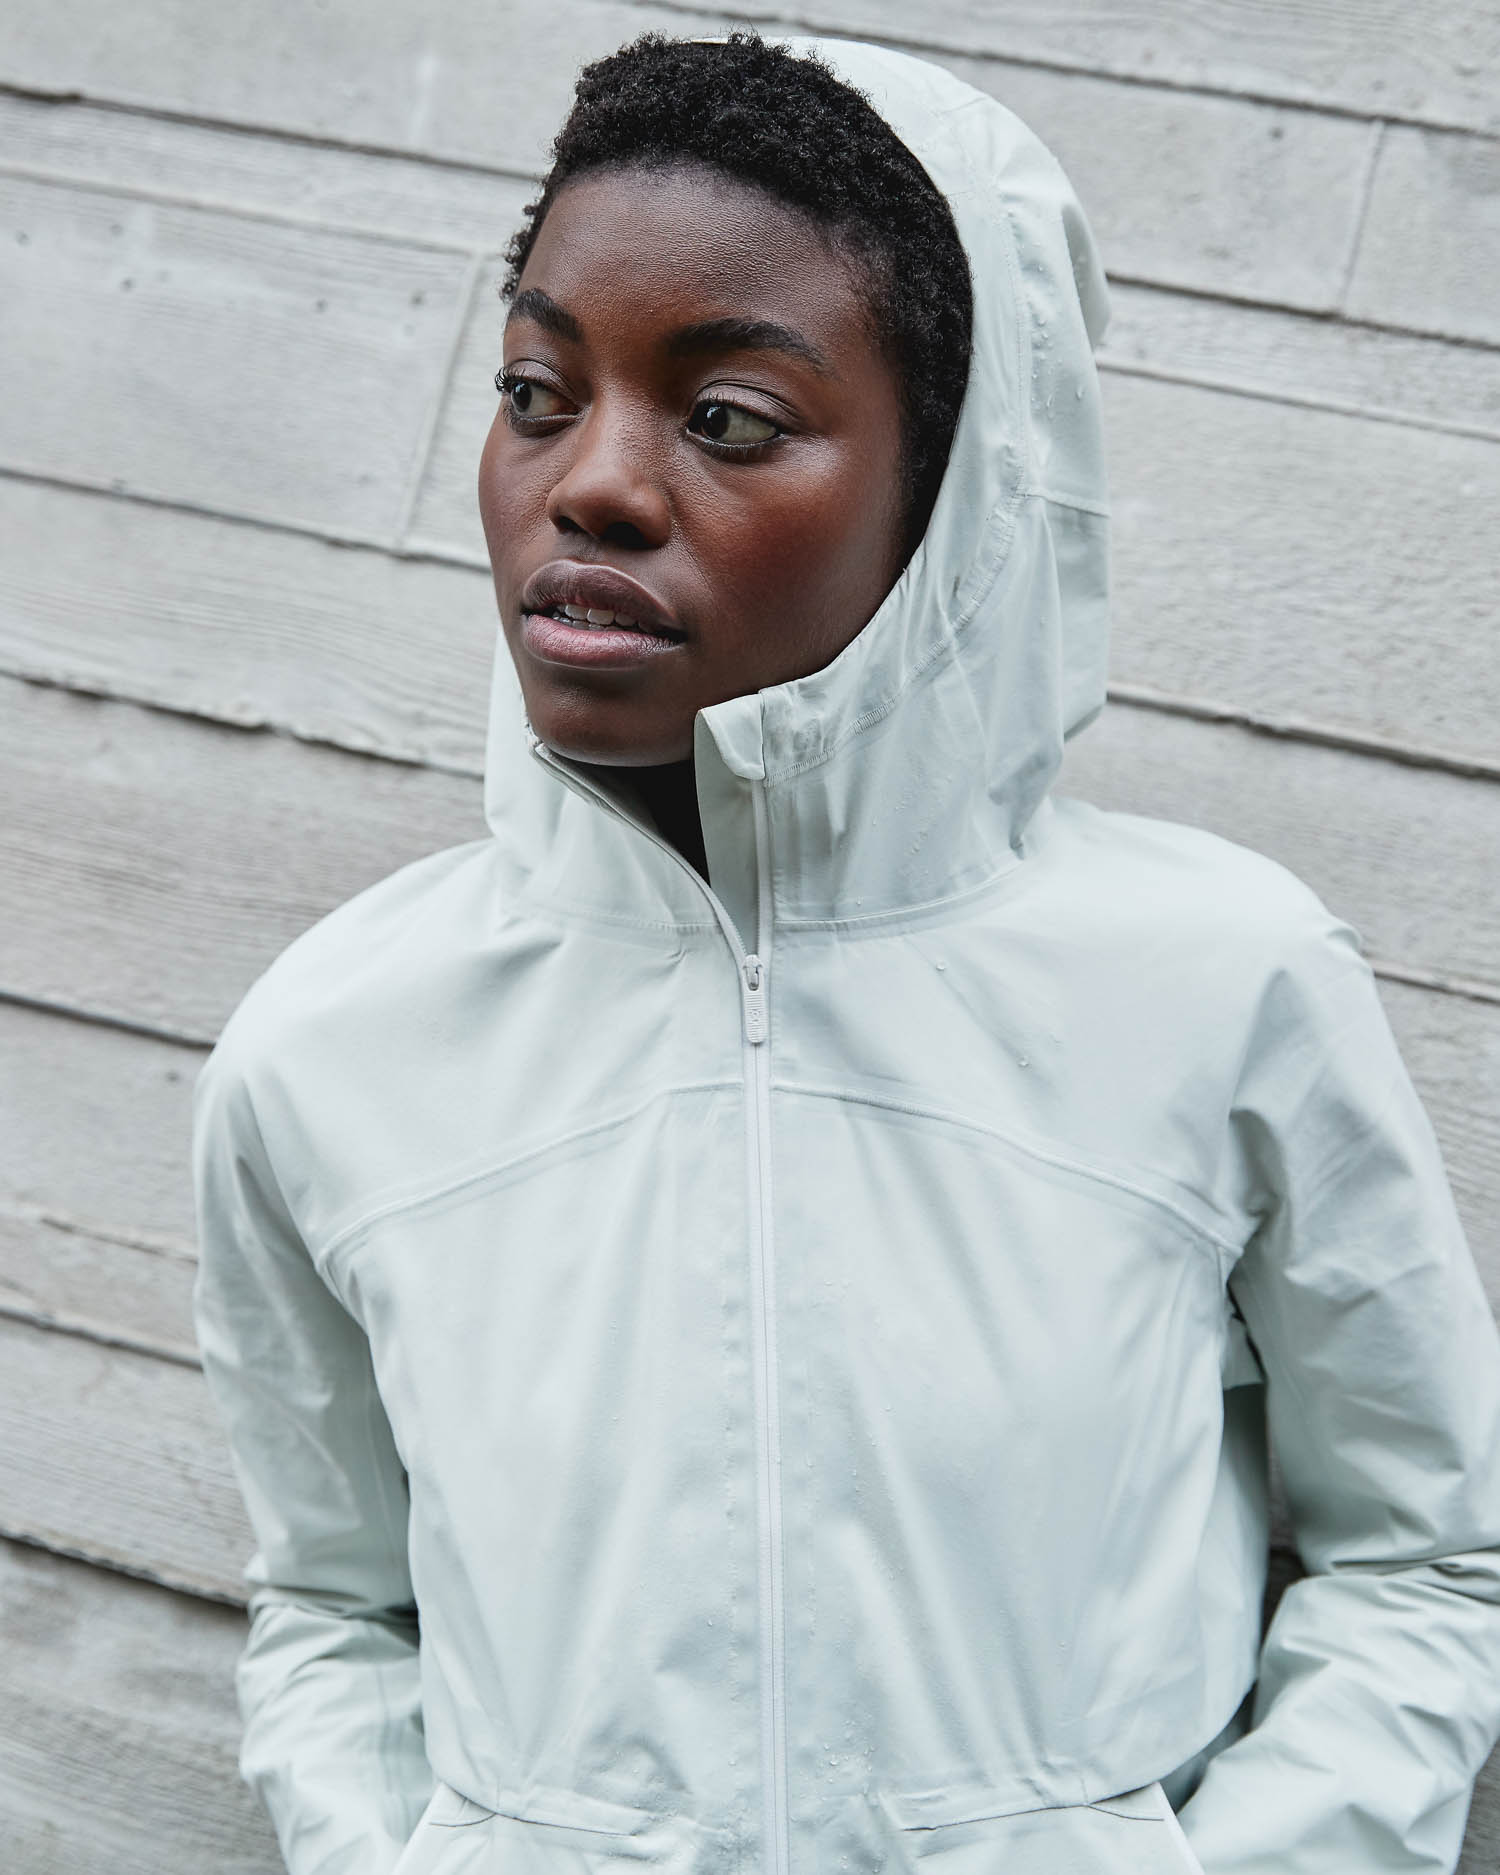 lululemon-rain-jacket-Abigail-Whitney-5641-MK-Matt-Korinek-Photography-Copyright-2018-SQSP-1500px.jpg